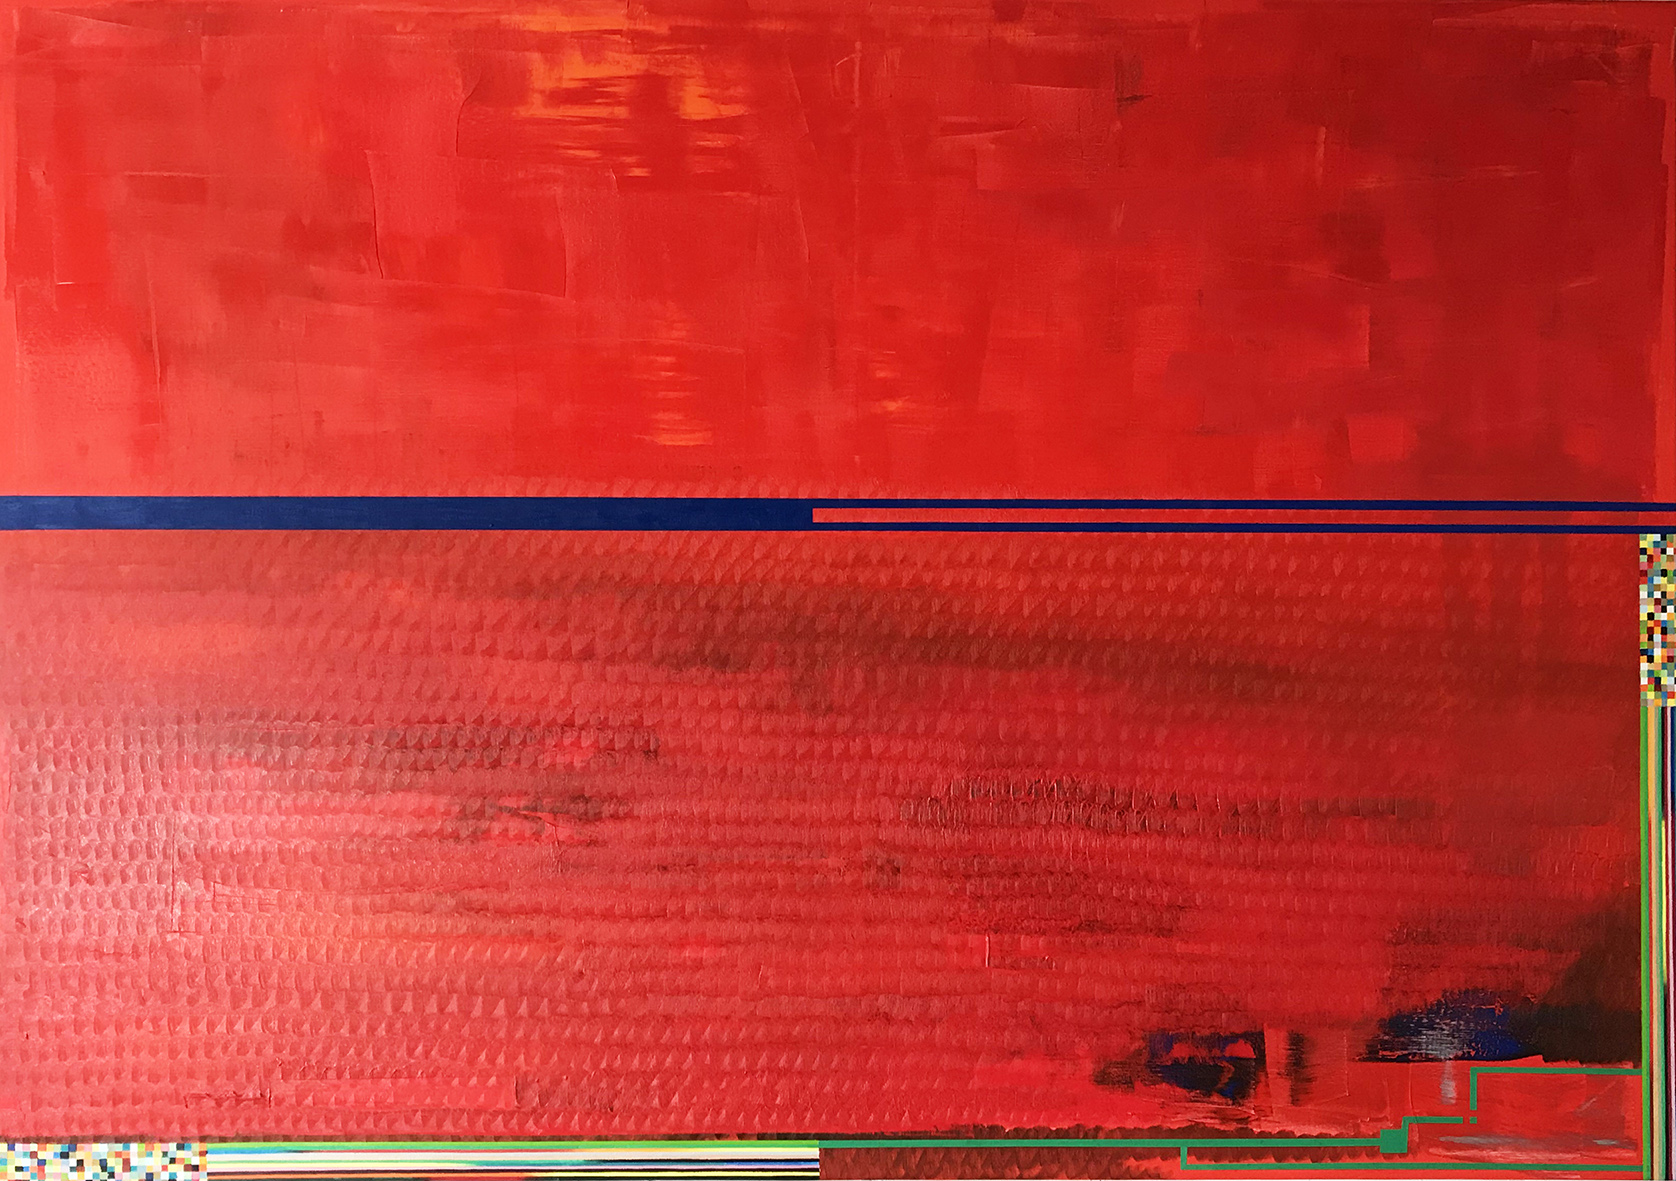 Red painting 3 (146x208cm) 2018-2019 (private collection)